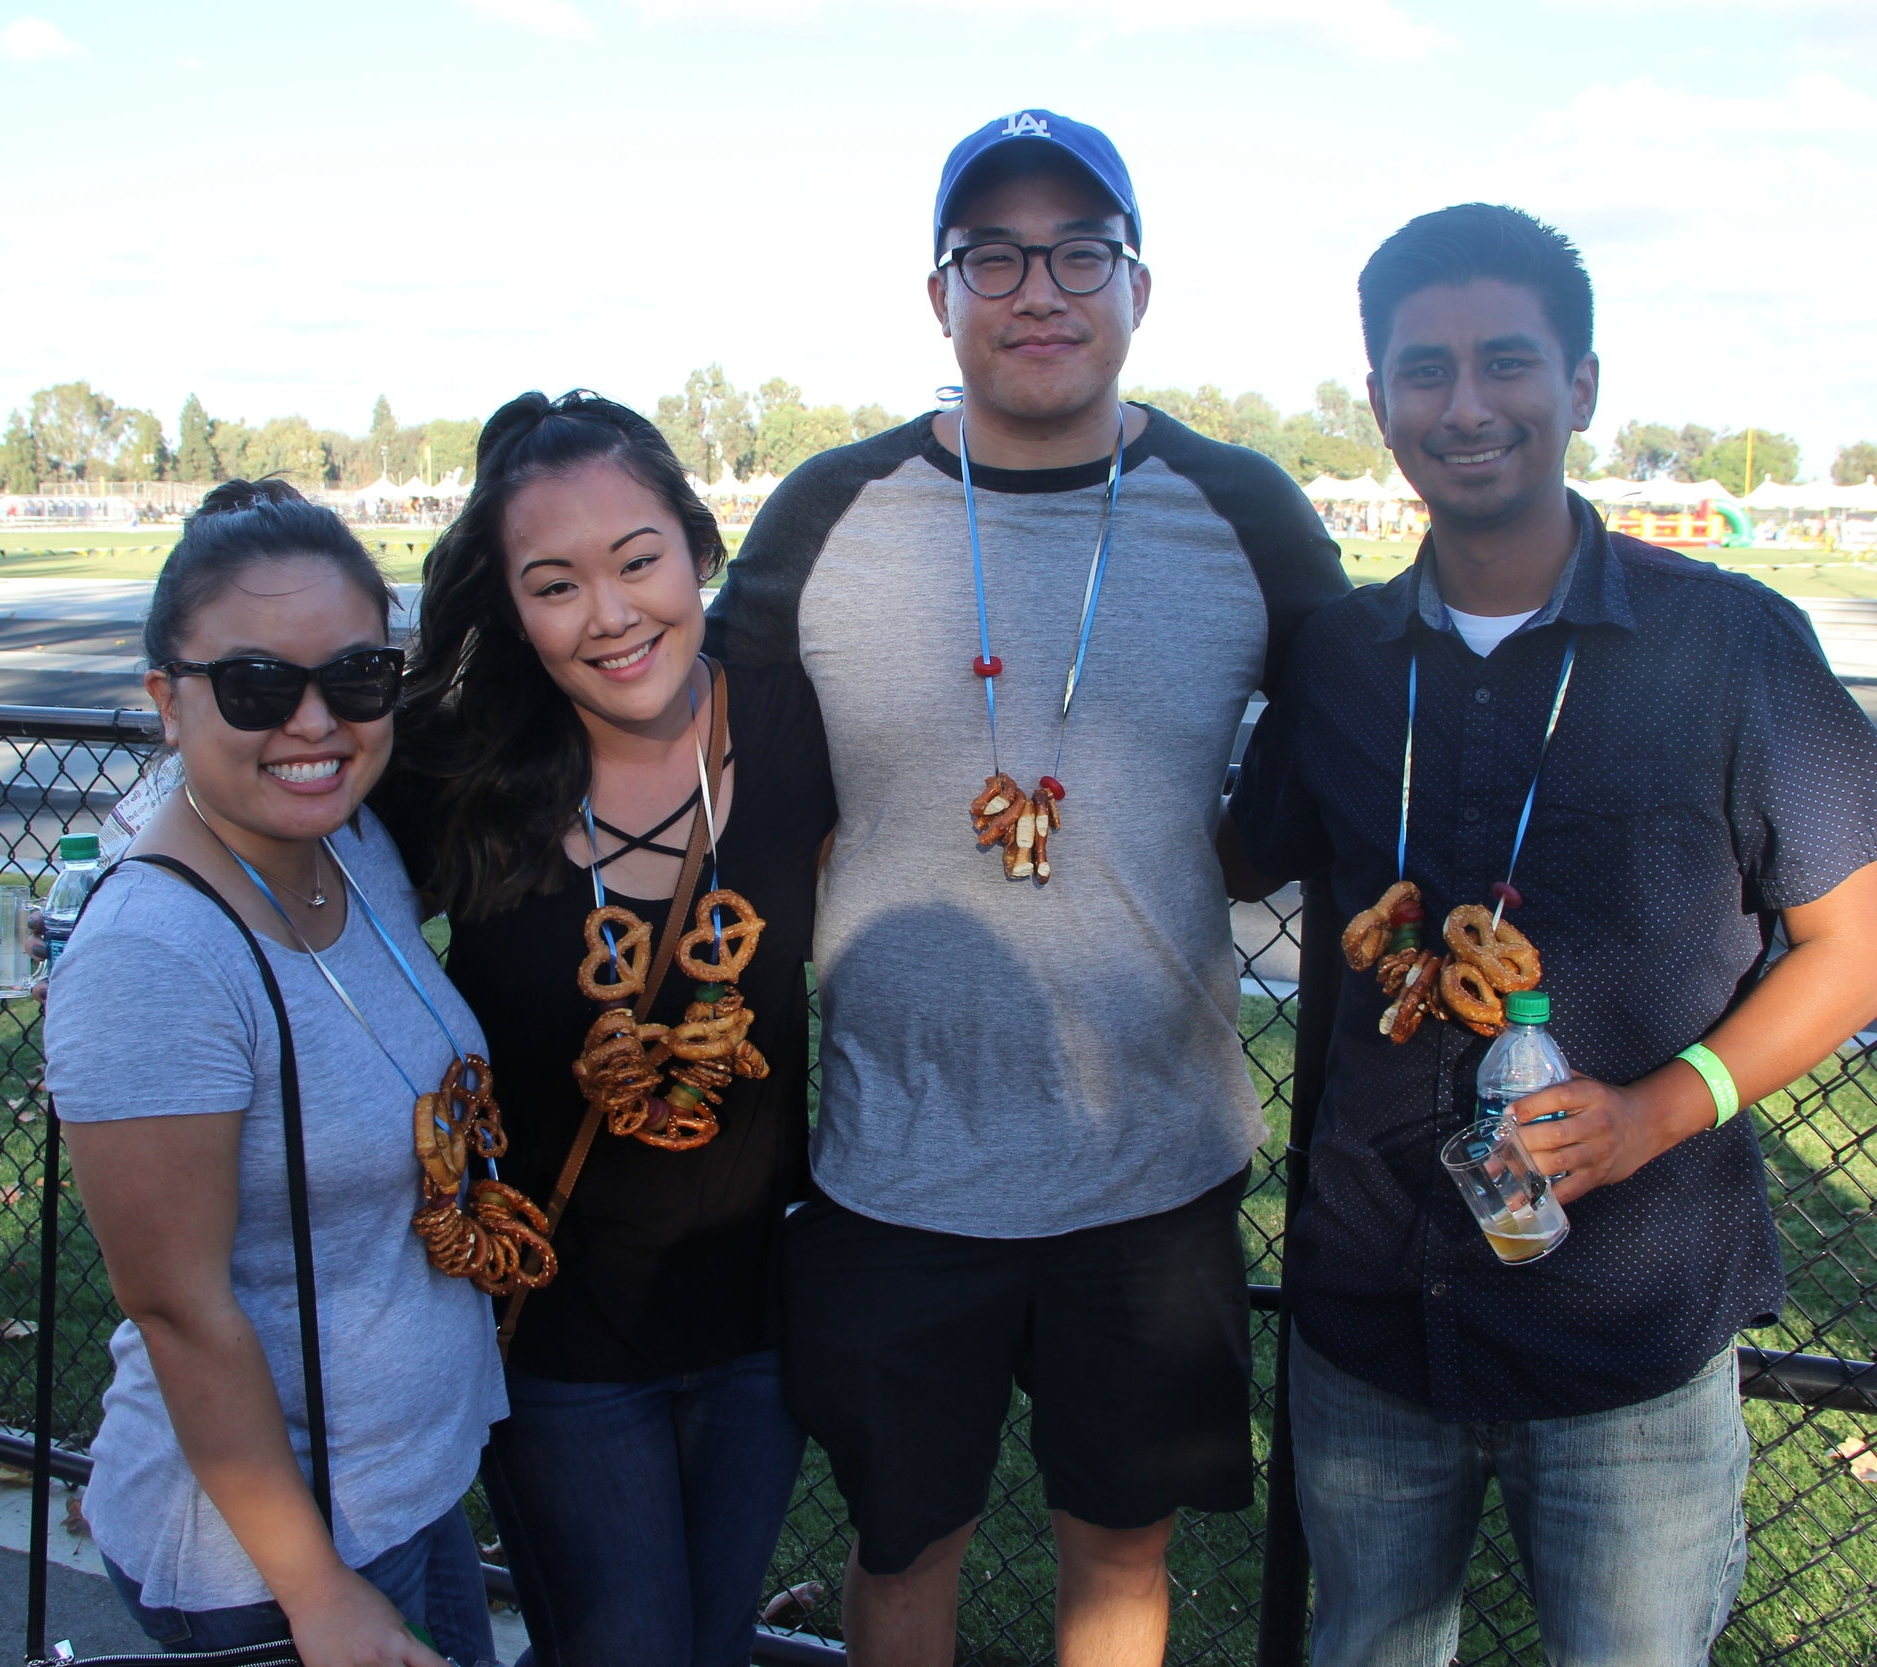 Christina Khong (far left) wears a matching pretzel-and-lifesavers necklace with her friends.